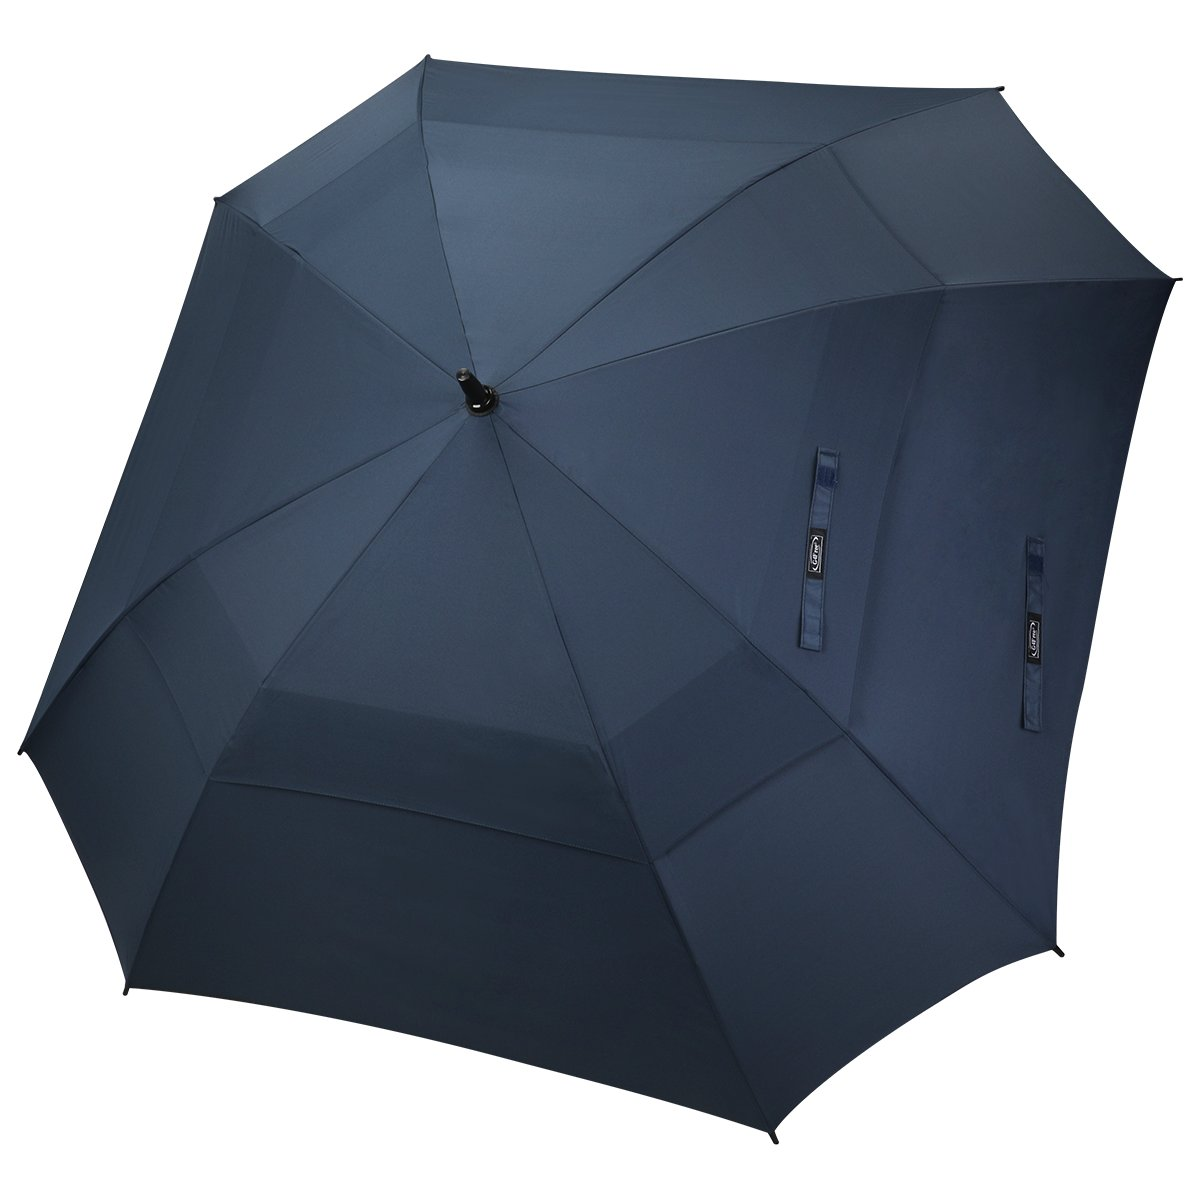 G4Free 62 Inch Oversize Double Canopy Vented Golf Umbrella Extra Large Square Umbrella Windproof Automatic Open Stick Umbrellas for Men Women by G4Free